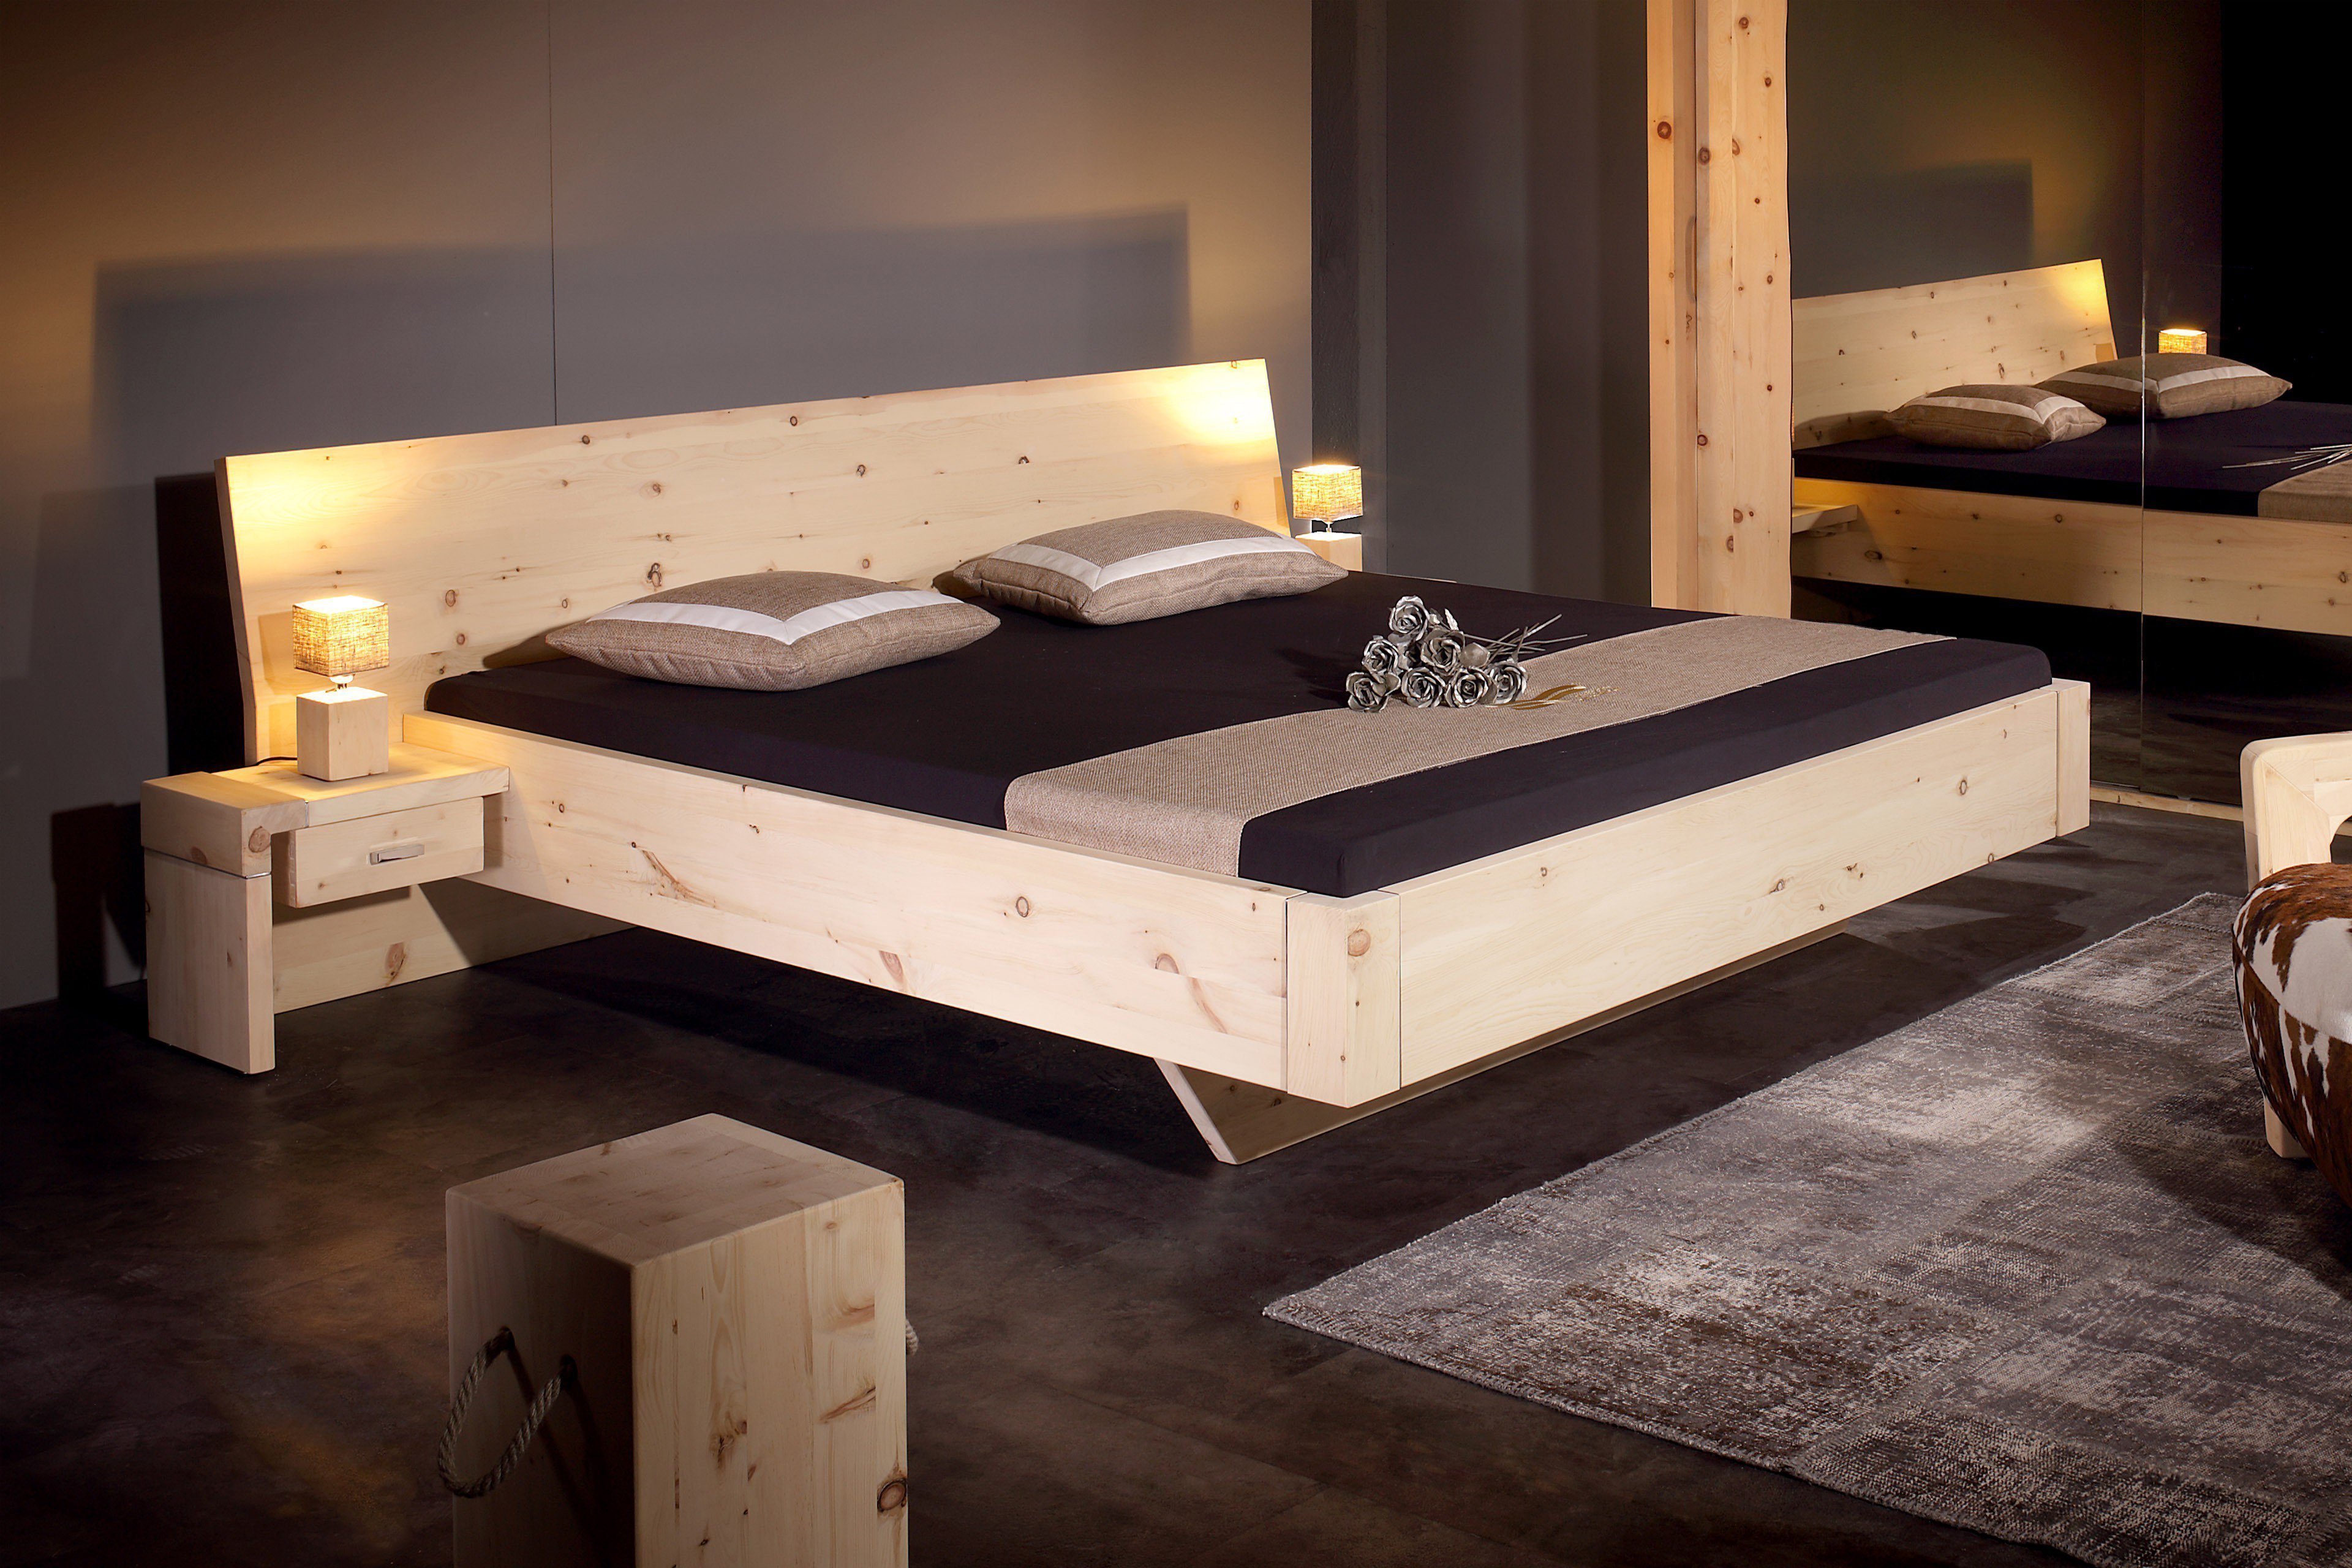 sprenger m bel bett alpina zirbenholz m bel letz ihr online shop. Black Bedroom Furniture Sets. Home Design Ideas